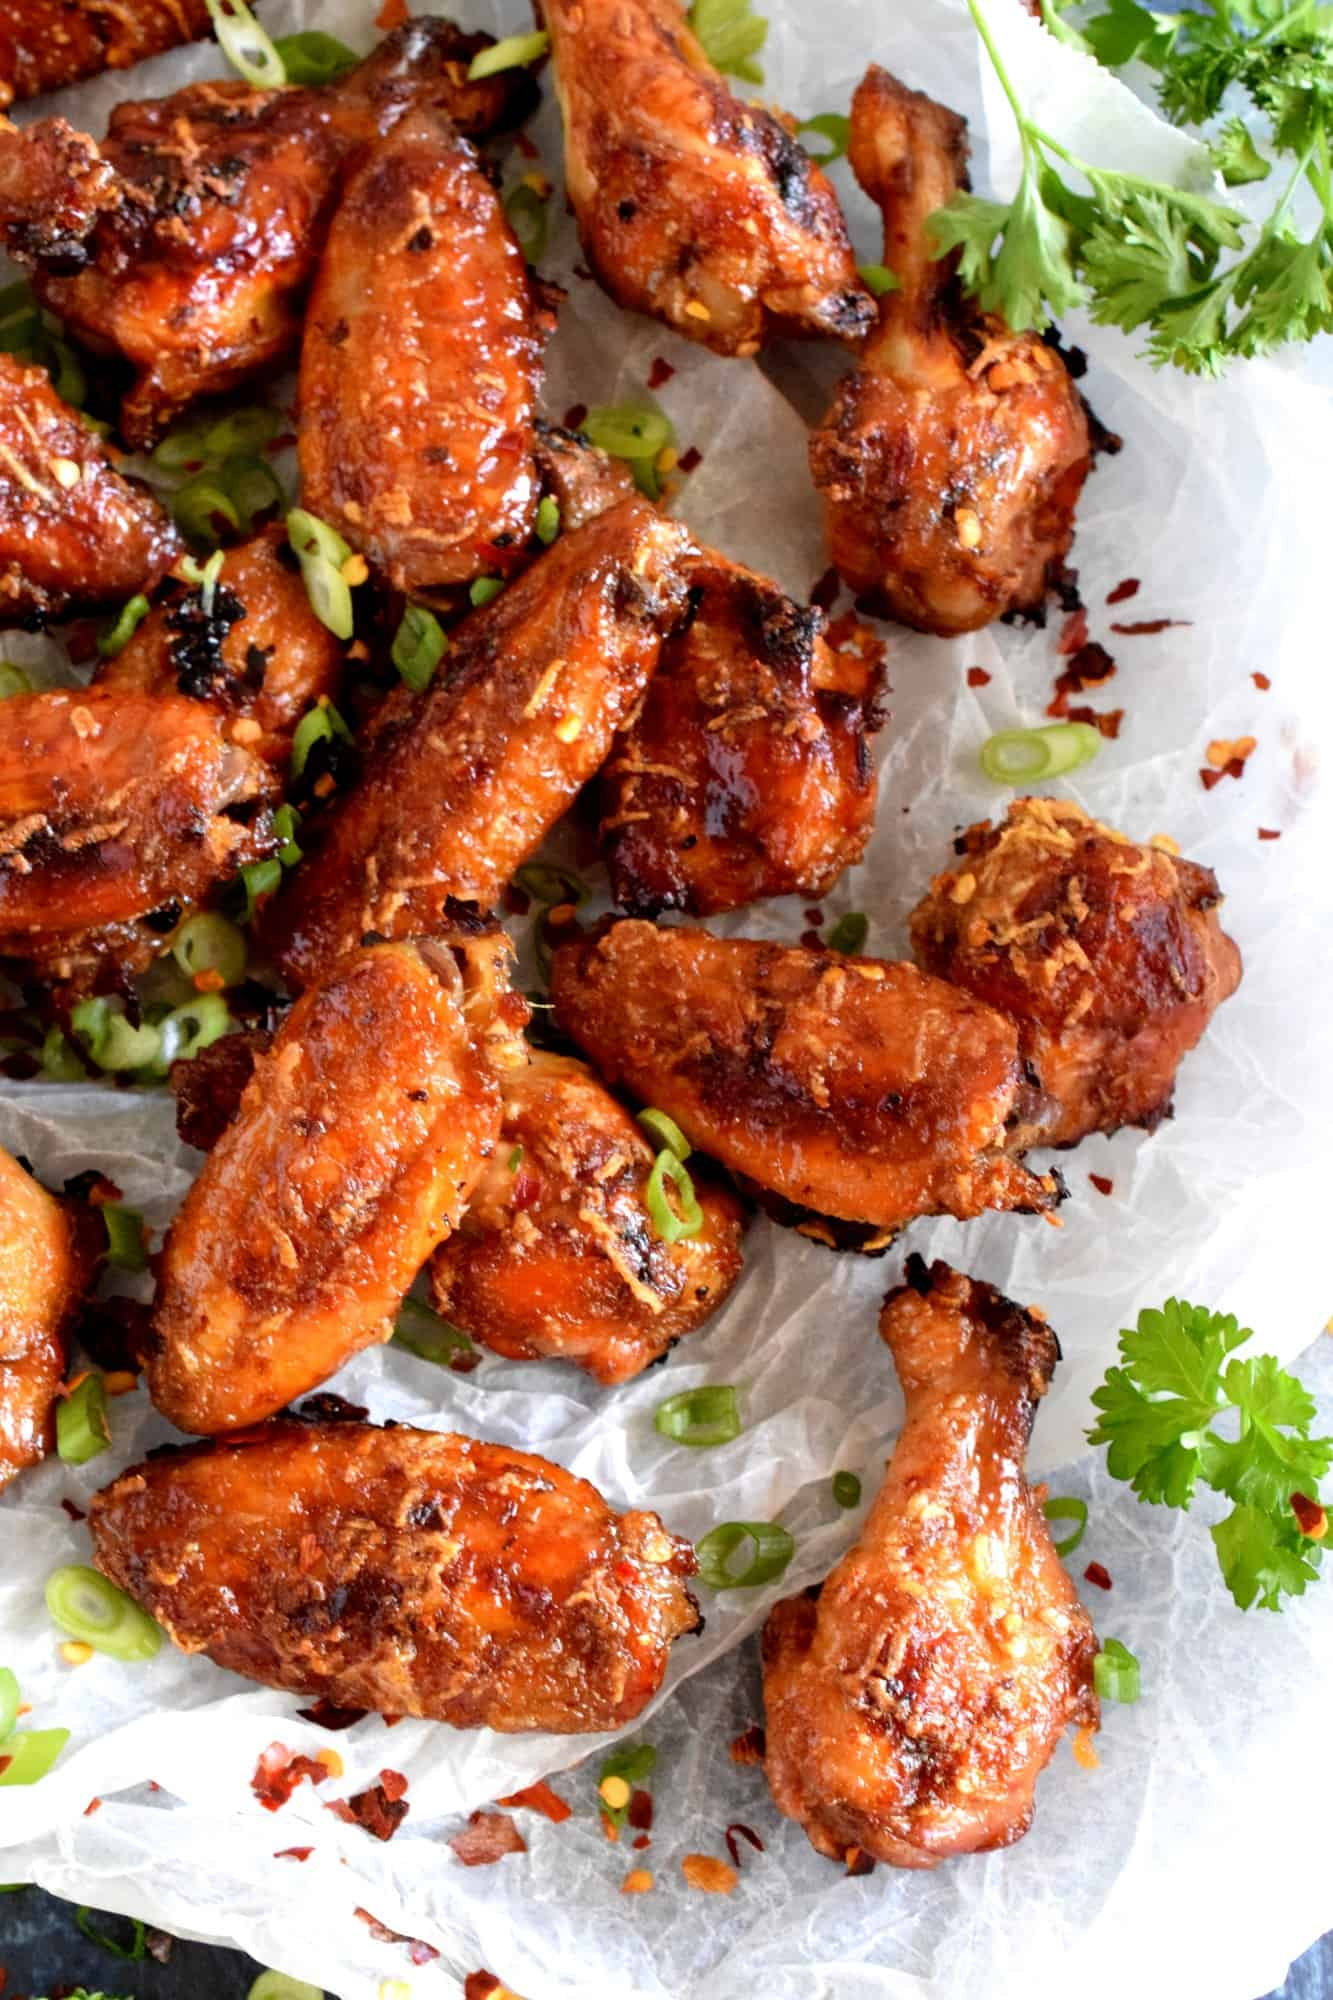 Chili Ginger Garlic Honey Wings